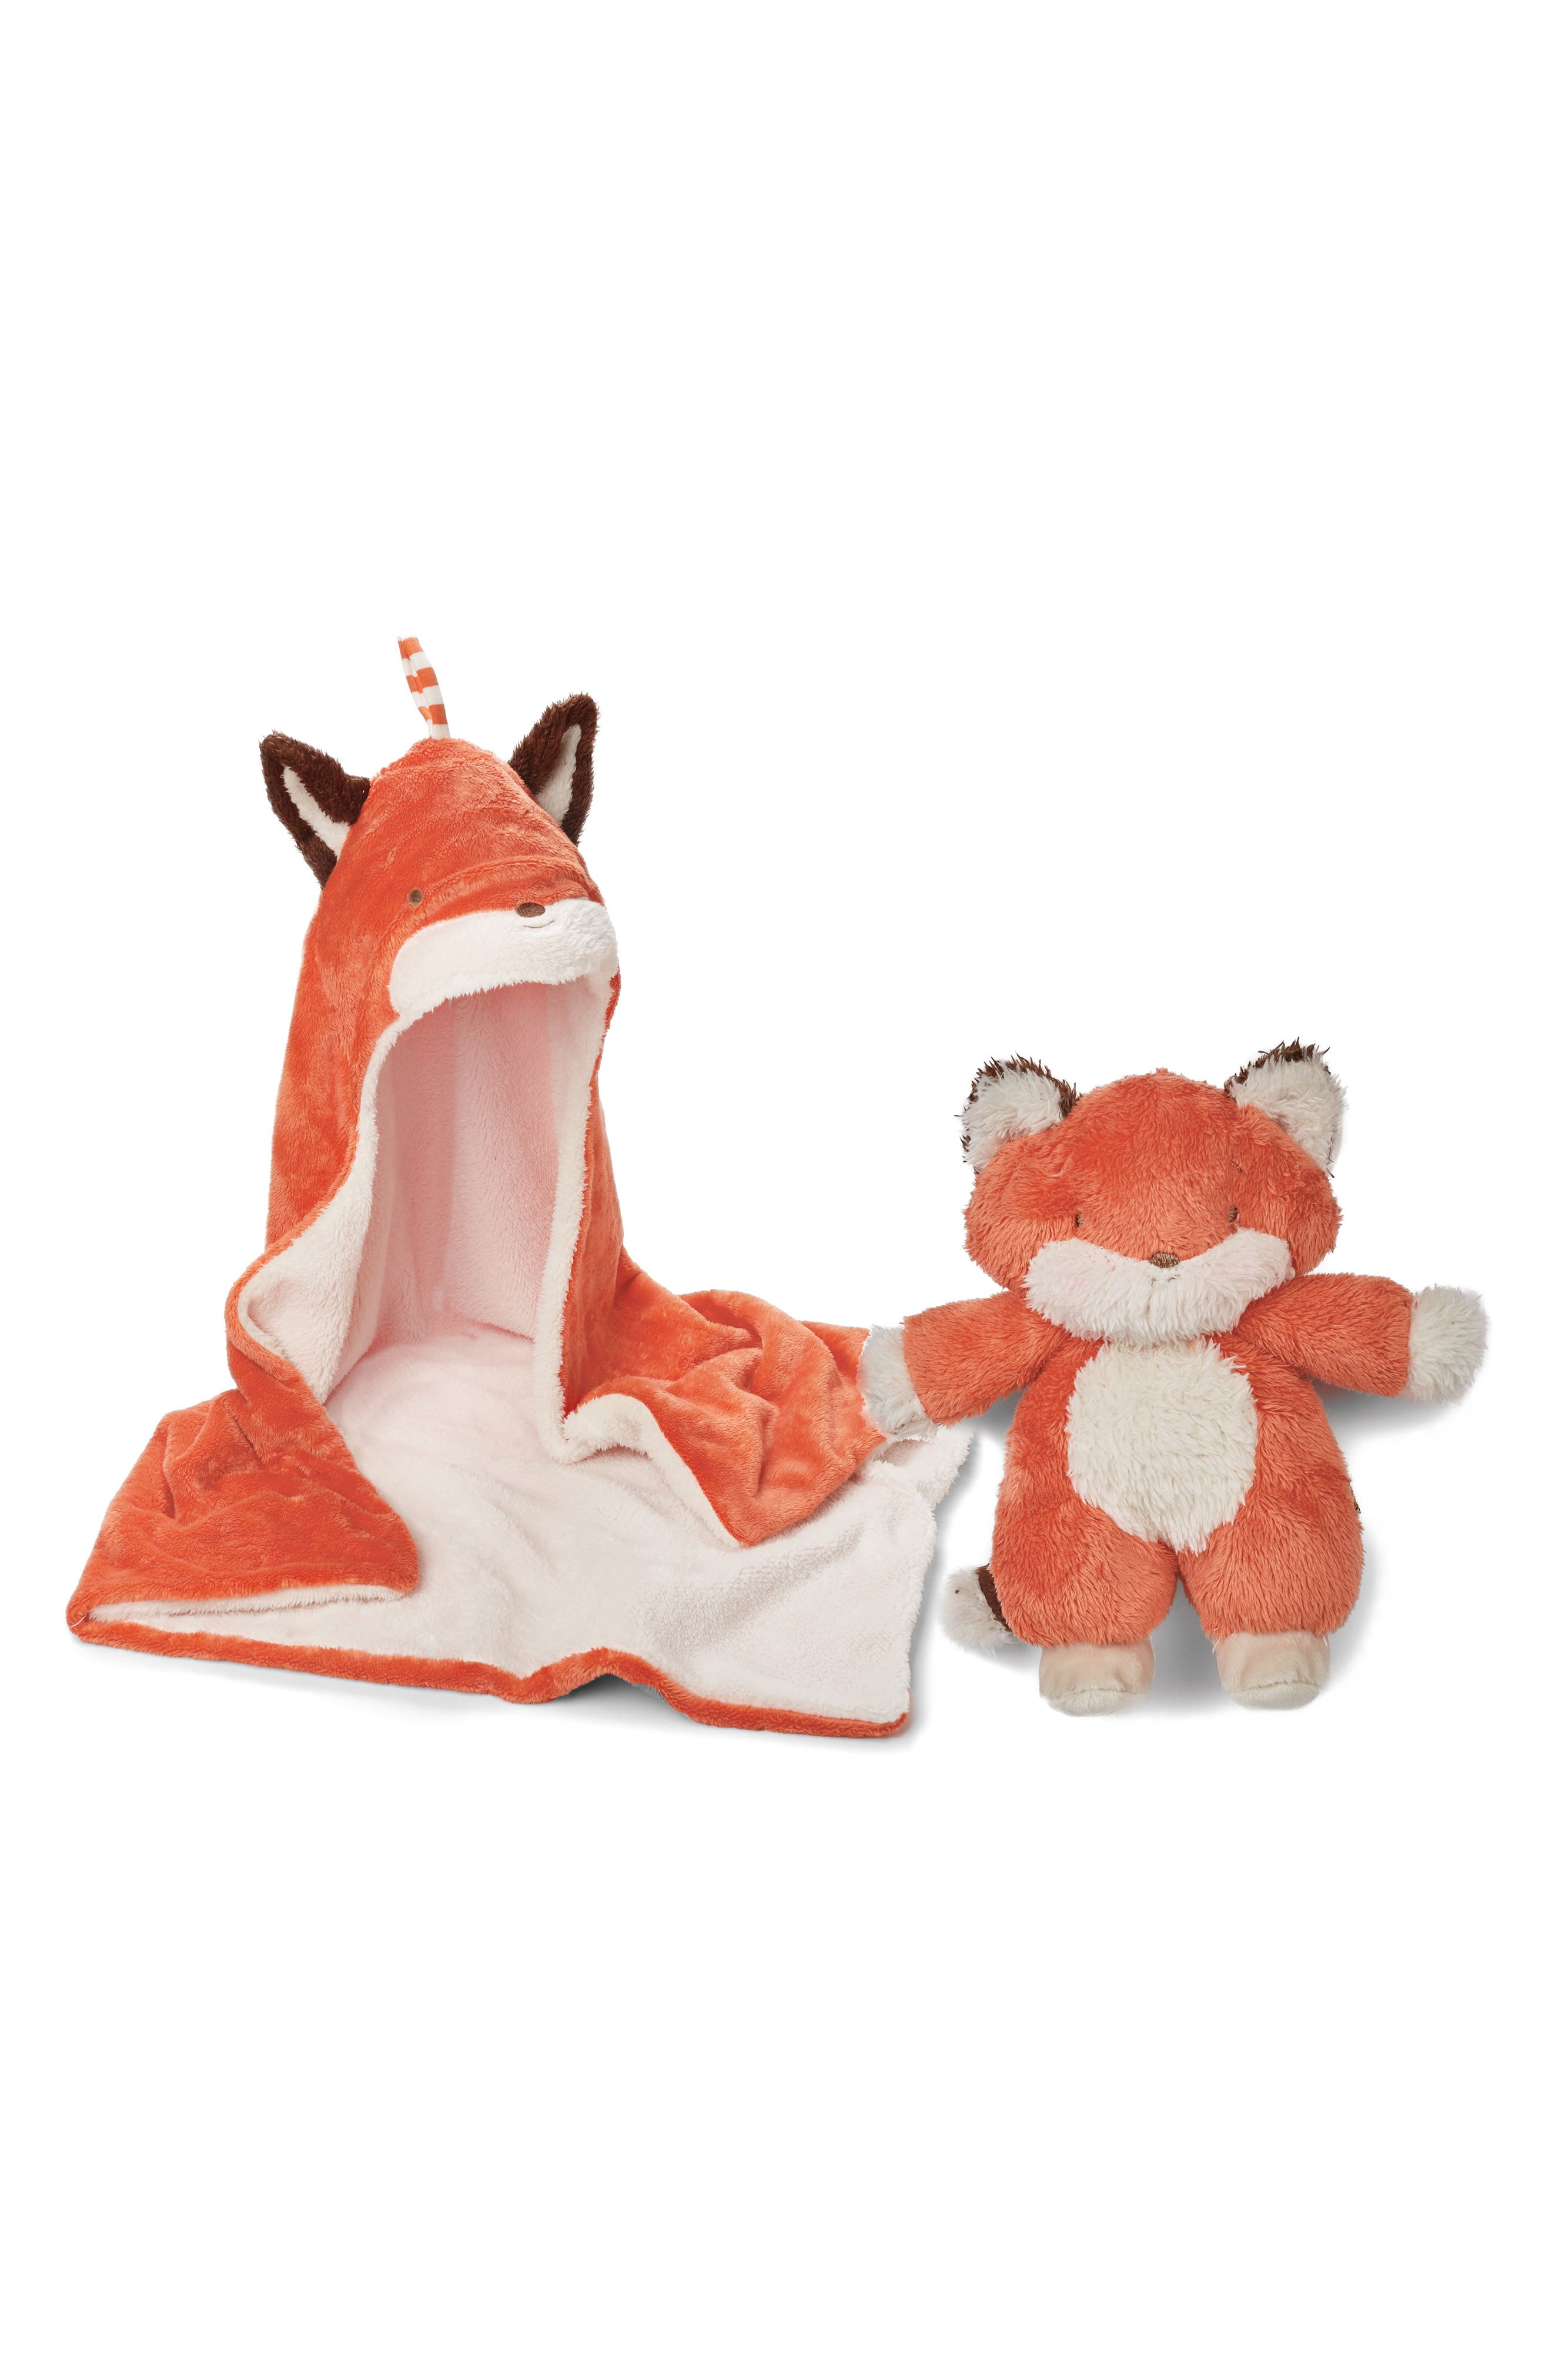 Alternate Image 1 Selected - Bunnies by the Bay Blanket & Stuffed Animal Set